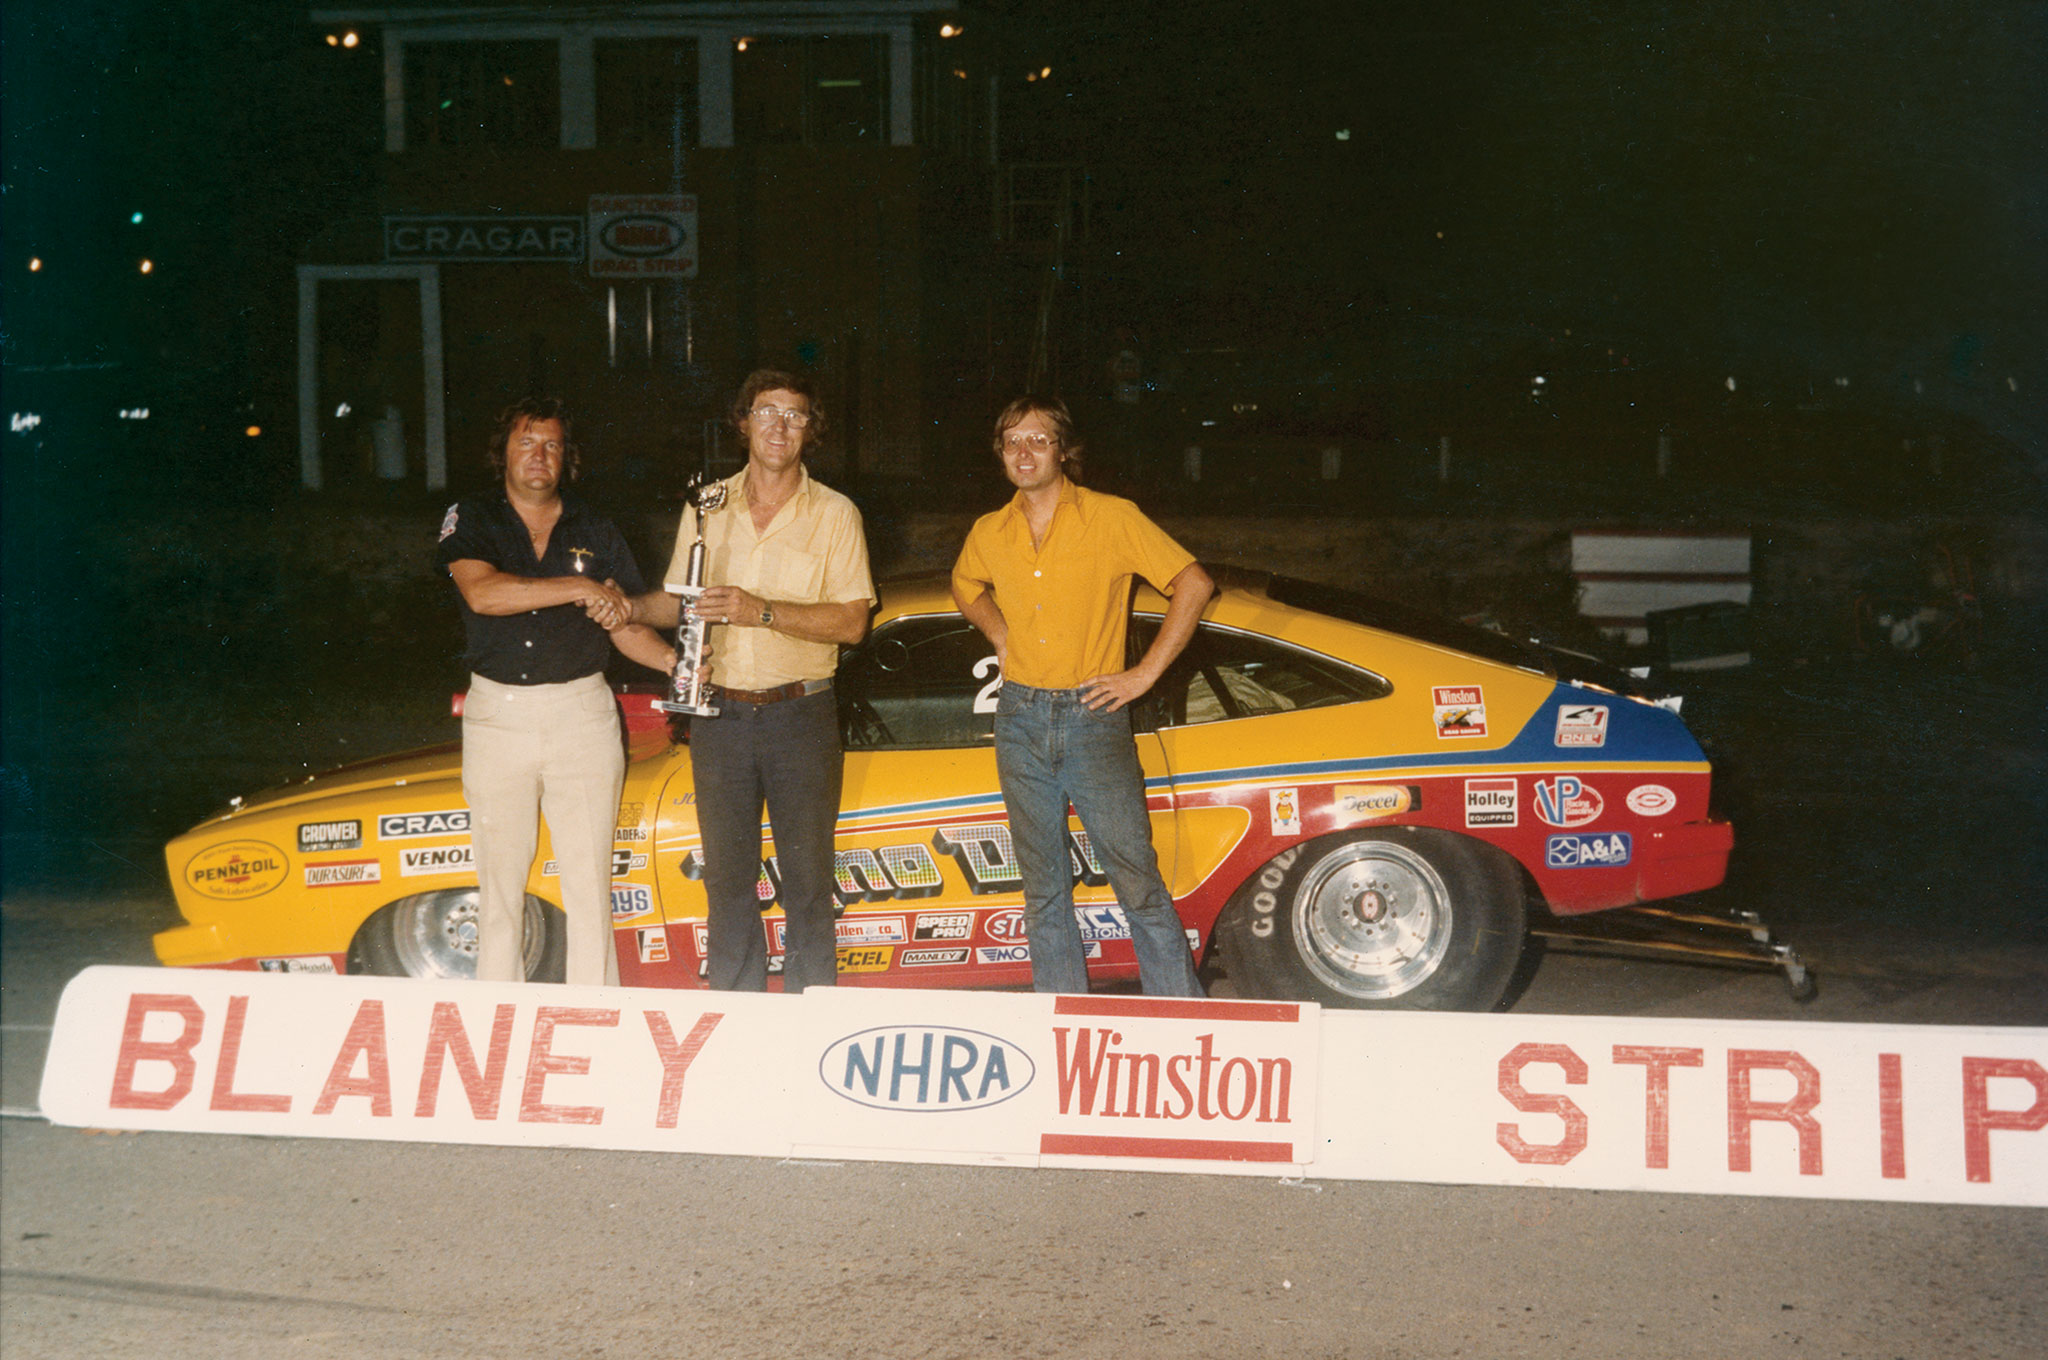 """While the Blaney Drag Strip in Elgin, South Carolina, is no longer, this photo has survived. Jon Kaase and Dyno are celebrating a match race win in the 1970s, perhaps over the likes of Sox & Martin or Bill """"Grumpy"""" Jenkins."""